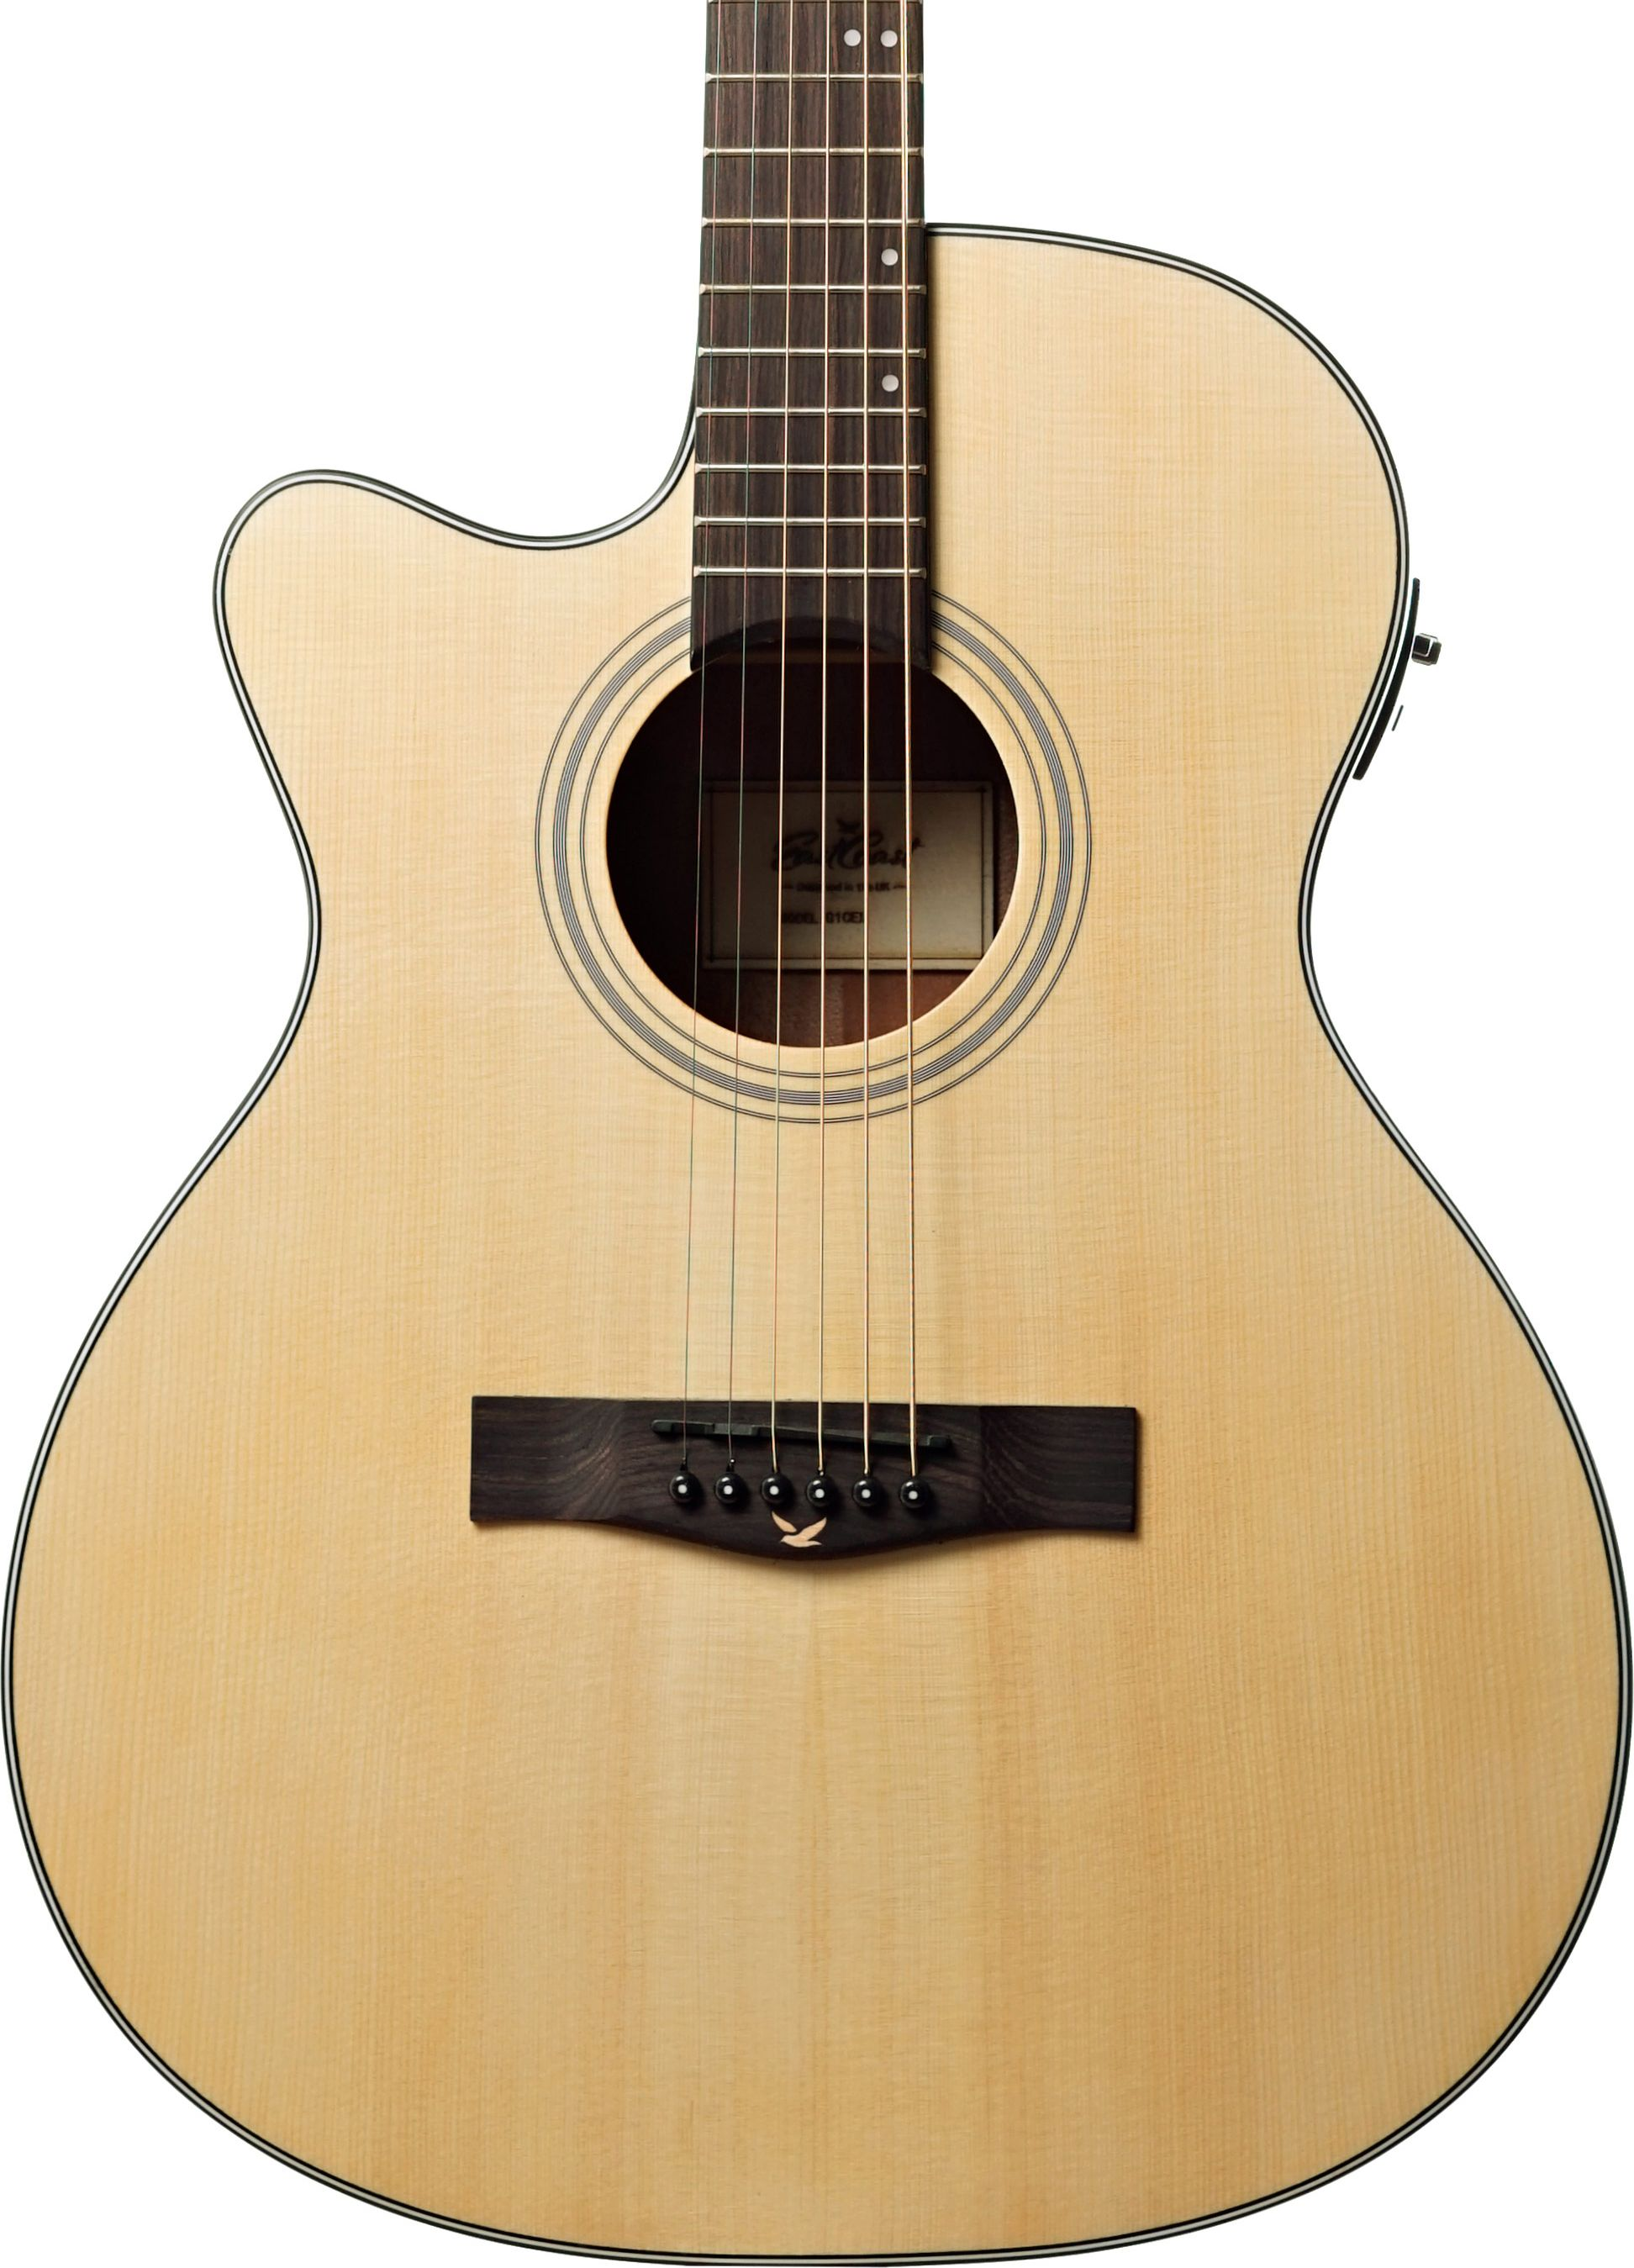 Eastcoast G1cel Grand Auditorium Left Handed Acoustic Guitar With Cutaway Built In Electronics In 2020 Guitar Acoustic Guitar Left Handed Acoustic Guitar